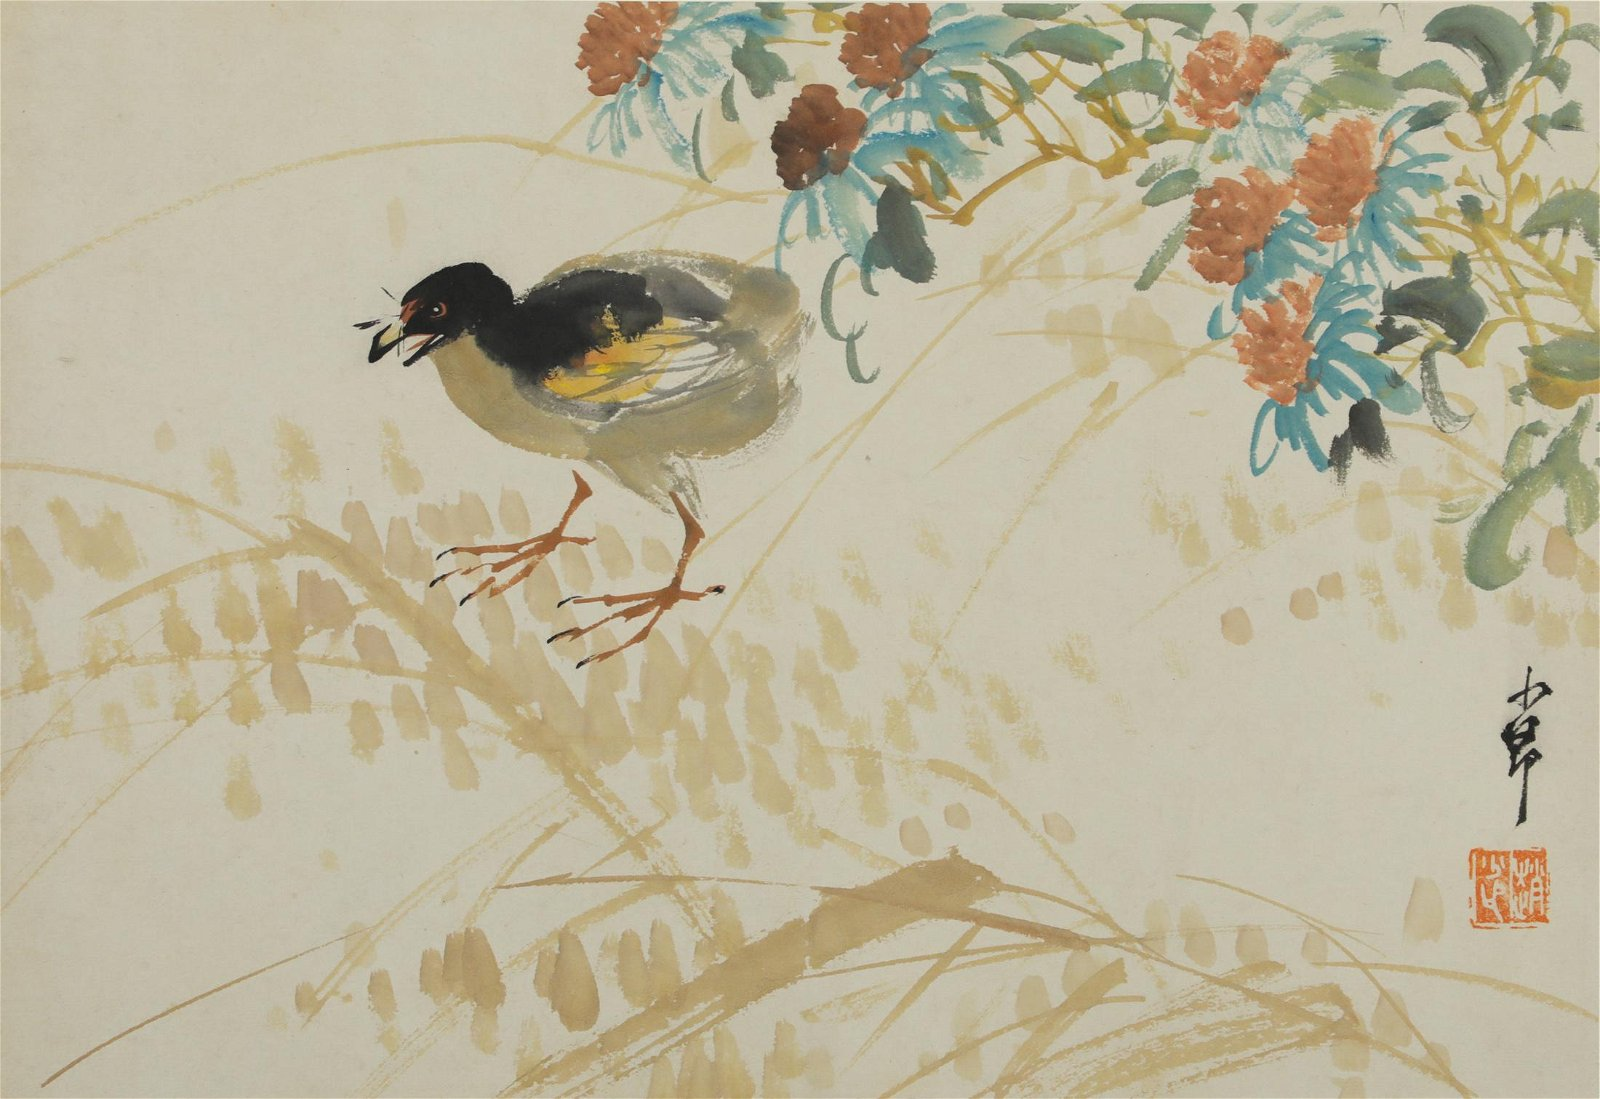 Chao Shao-an - Flower and Bird Painting